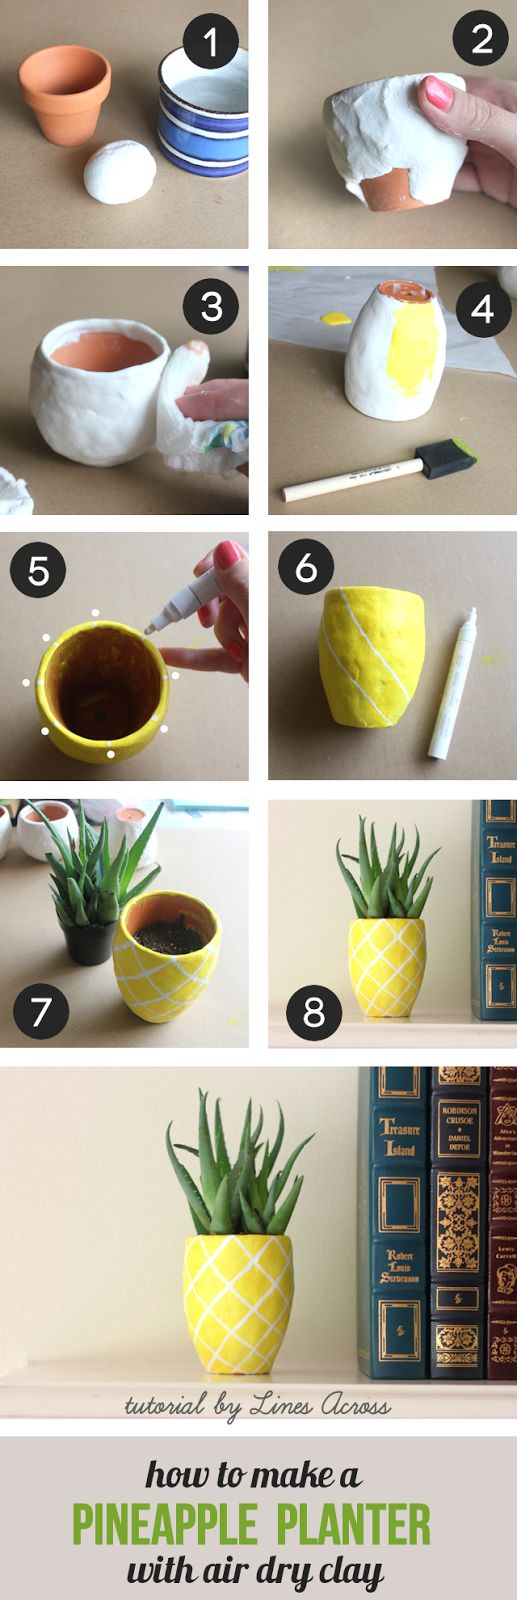 DIY Succulent Pineapple Planter. Adorable and easy craft inspired by the tropical fruit that is SO IN right now! Cute for home or dorm decor, as well as a simple yet lasting housewarming or general gift.  Need:  A terracotta pot  Air Dry Clay (WHITE) Yellow paint  (Recommend: FolkArt Florescent Glow Yellow found at PlaidOnline.com) White or Black Paint Marker